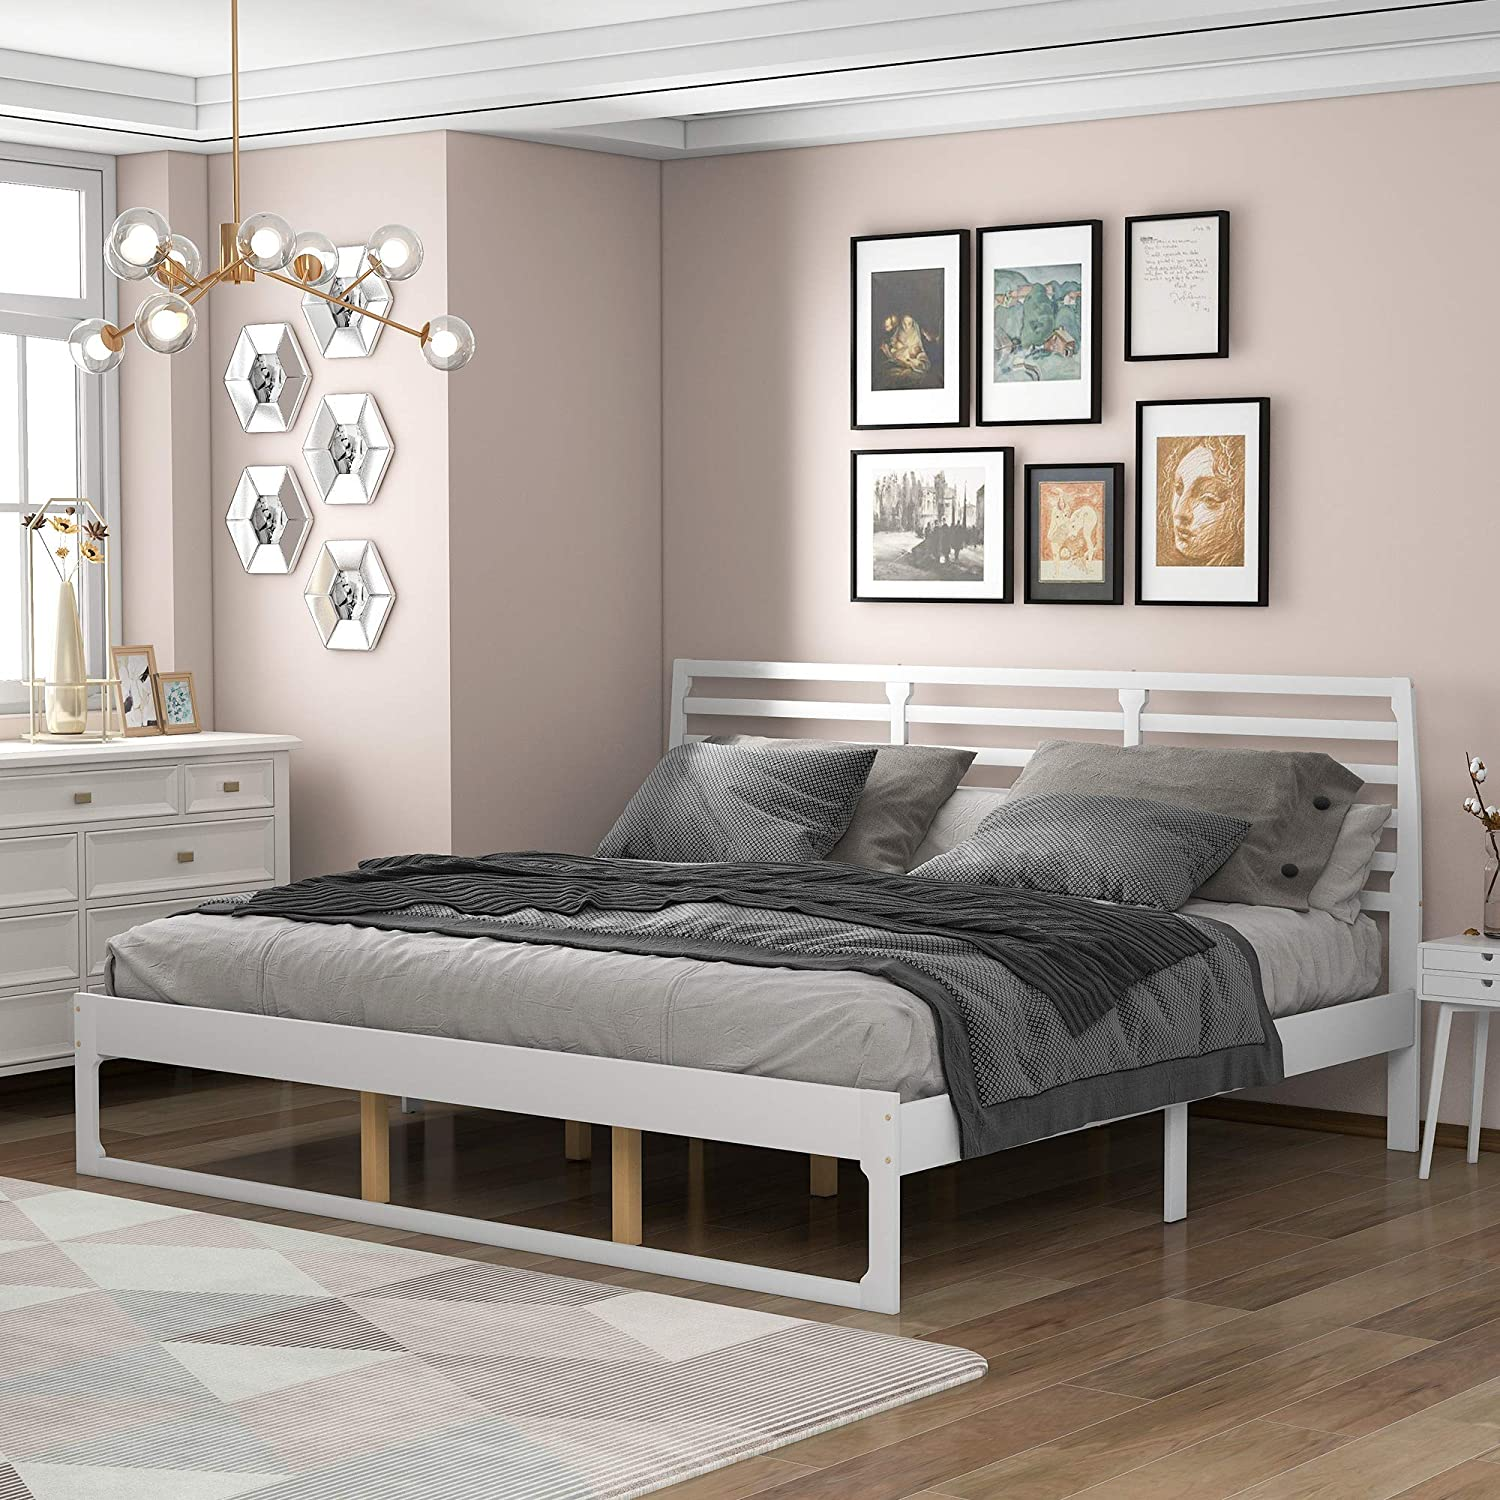 Wood Platform Bed Ranking TOP17 Frame Wooden 2021 autumn and winter new Bedstead Dormitory King F